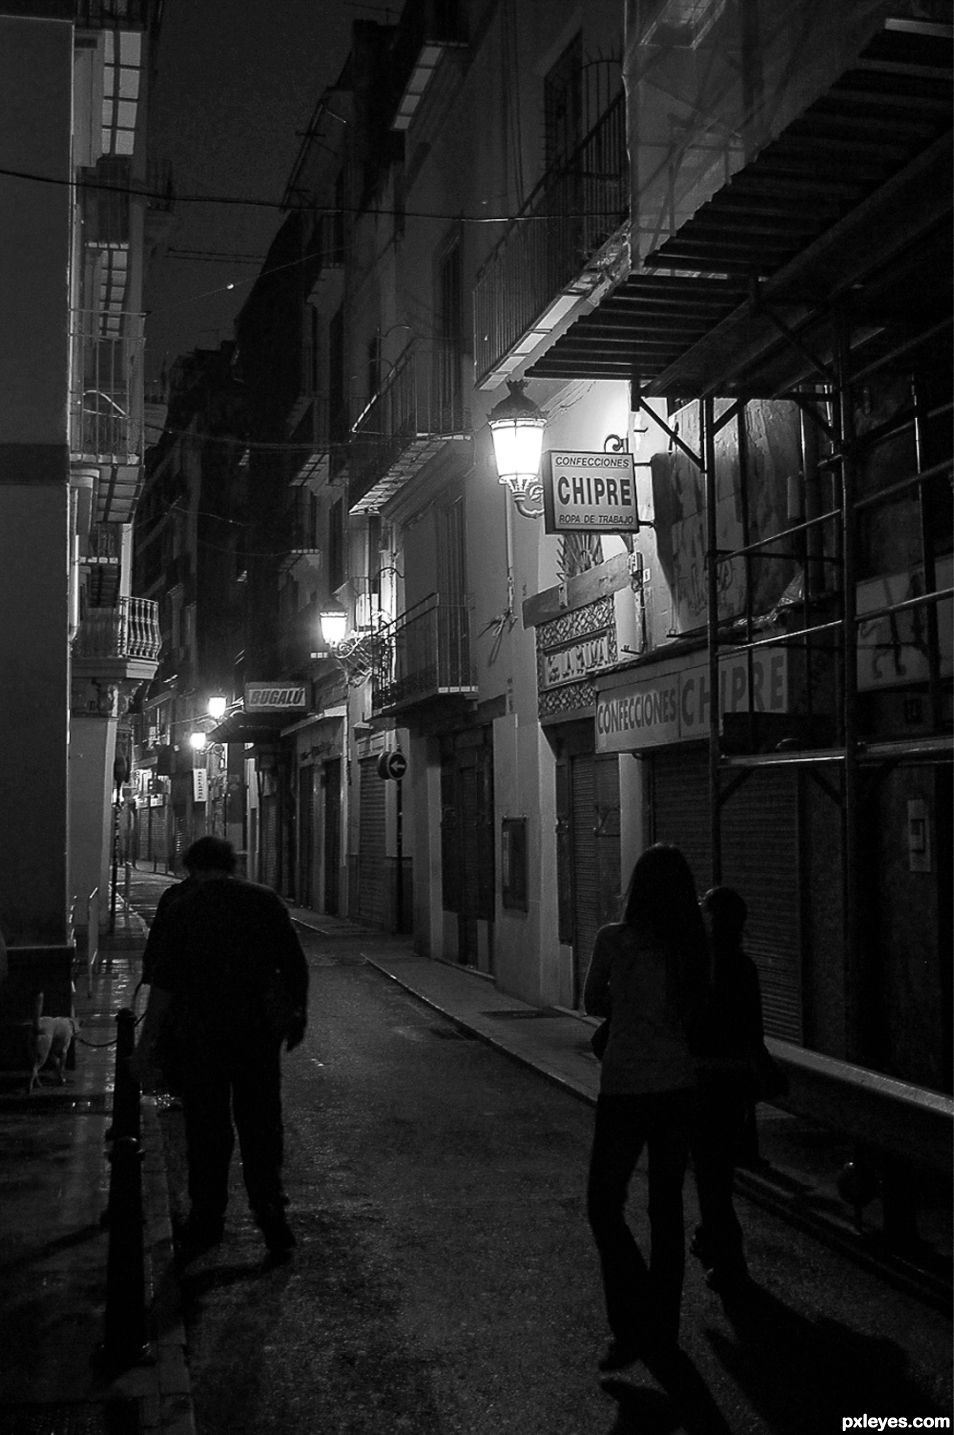 In the dark street of Valencia